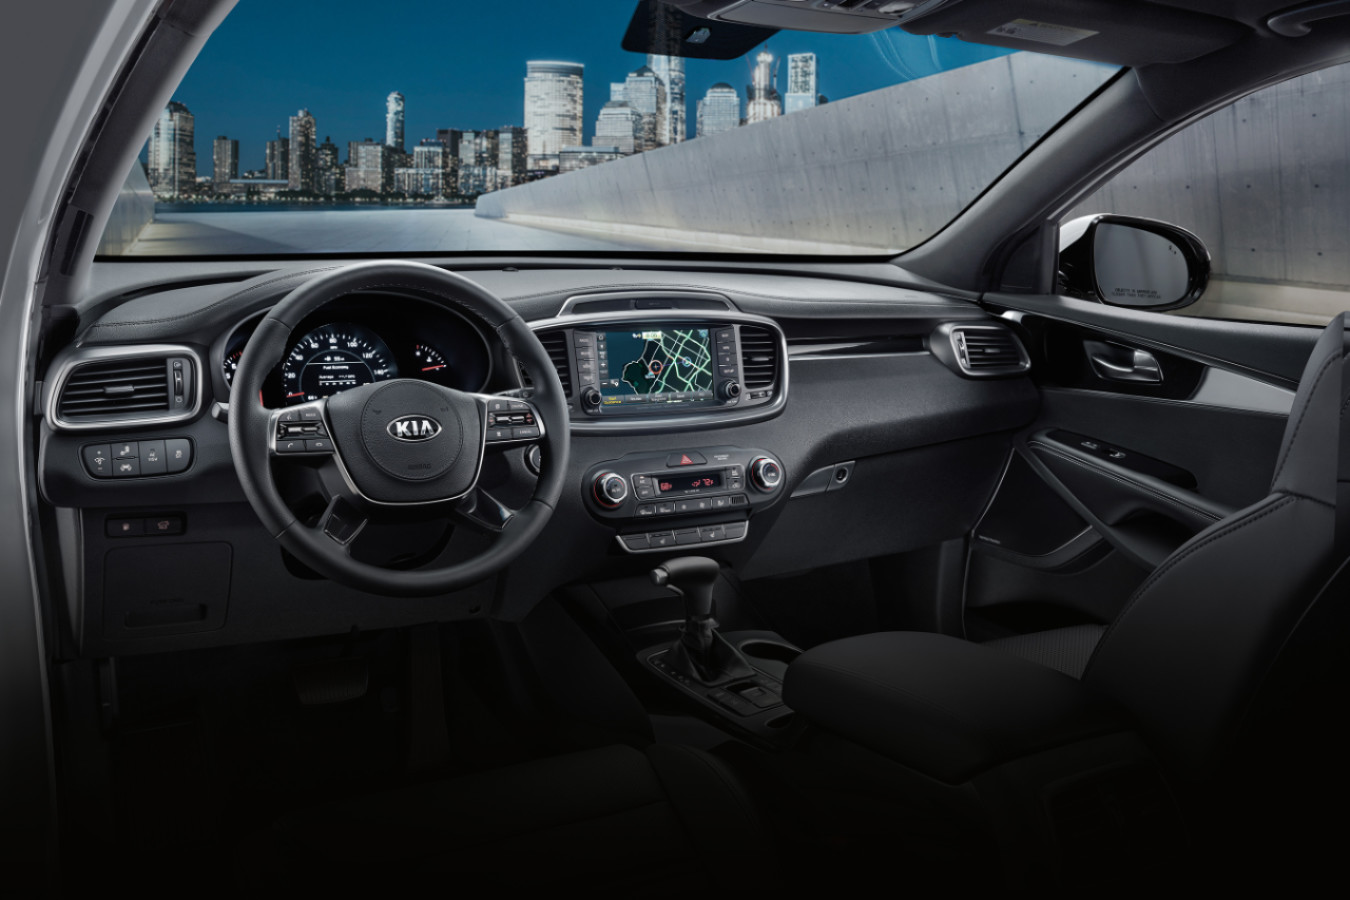 Up Front in the 2020 Kia Sorento